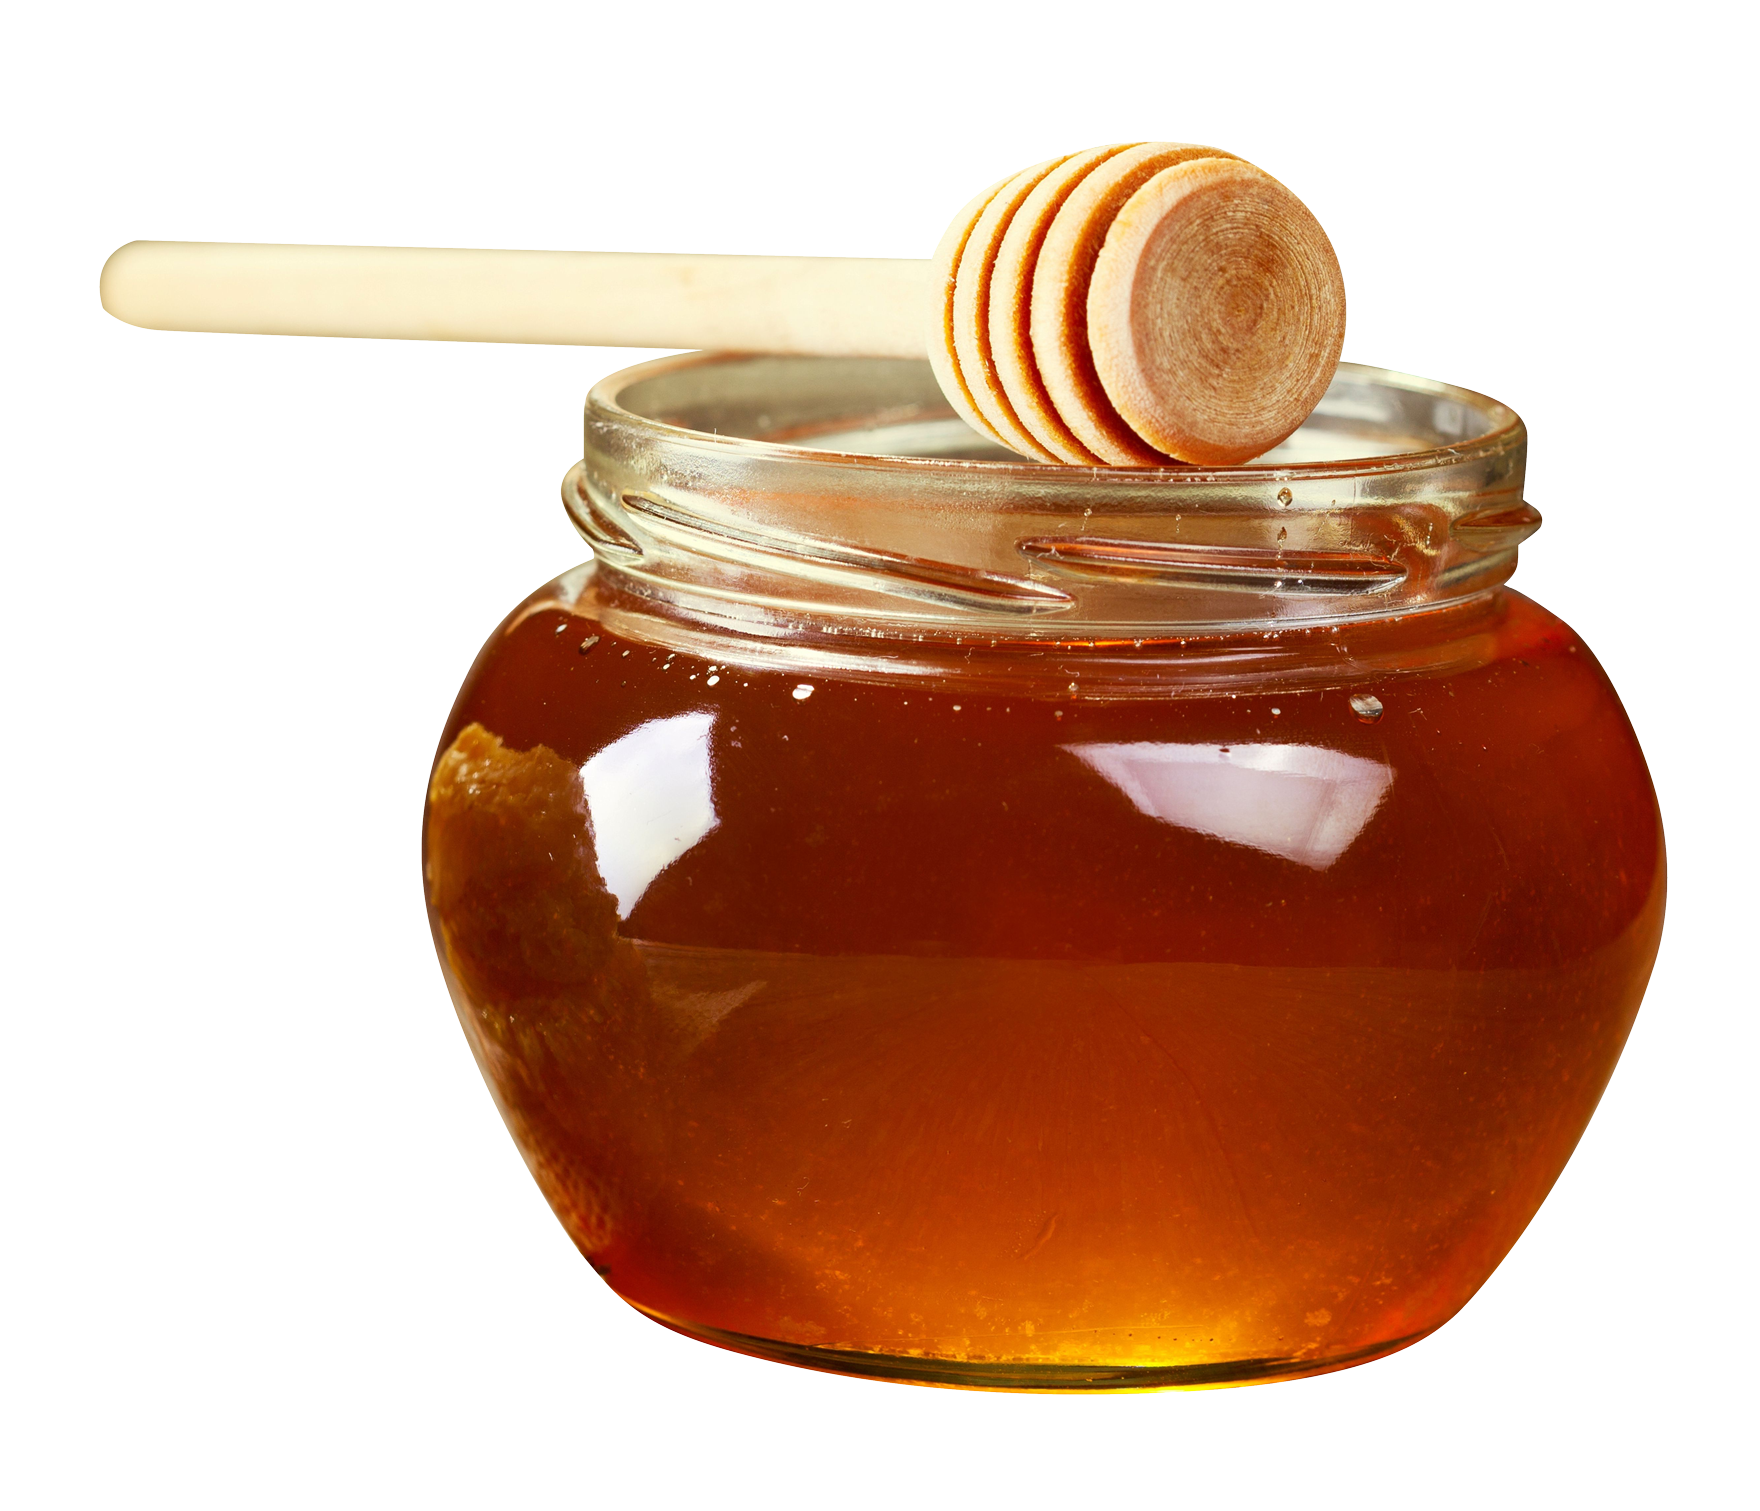 Purepng free transparent cc. Honey png image picture library stock